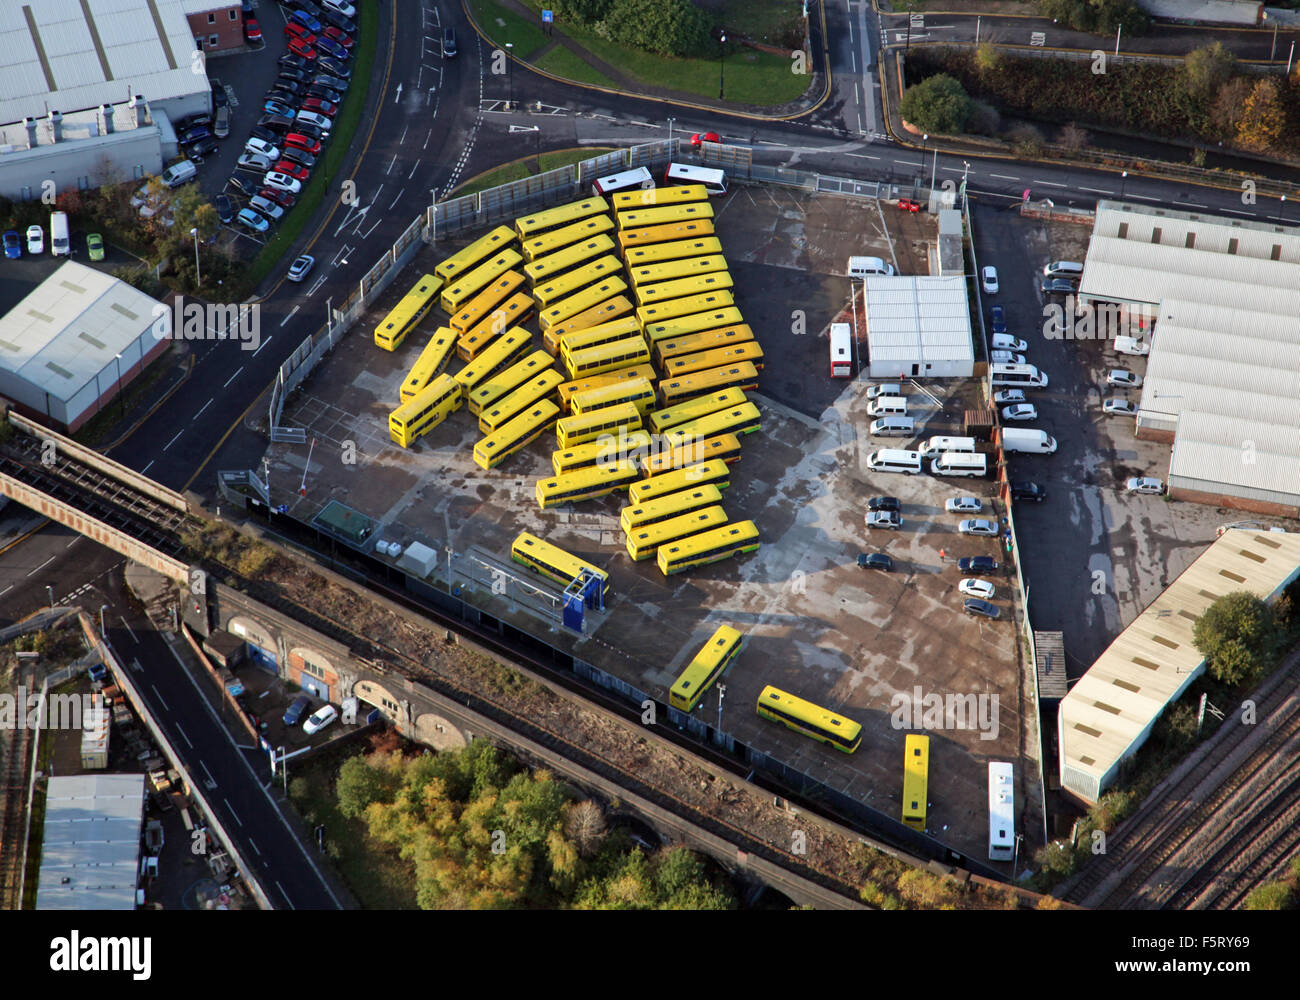 aerial view of yellow buses parked in a compound in UK - Stock Image